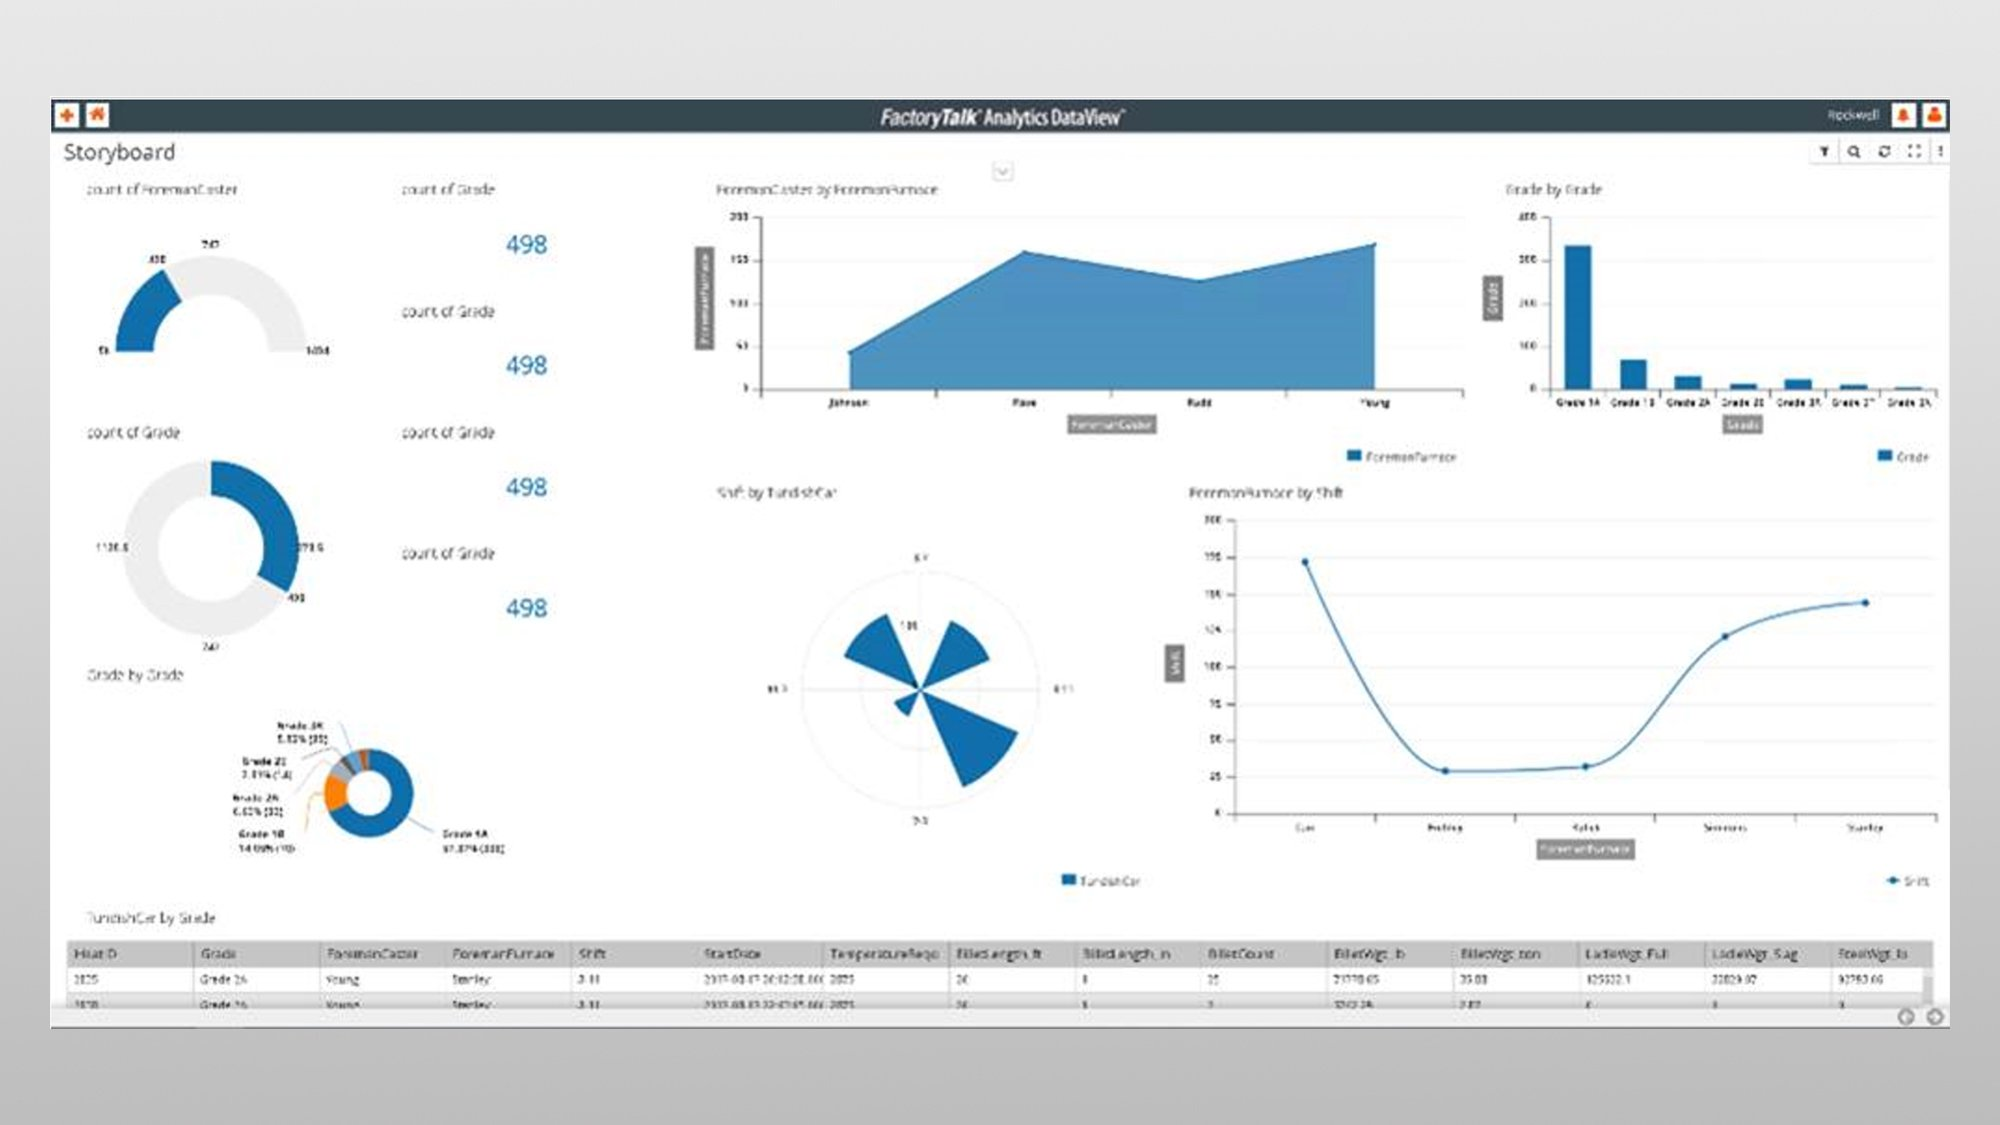 Multiple graphs displayed from FactoryTalk Analytics DataView software